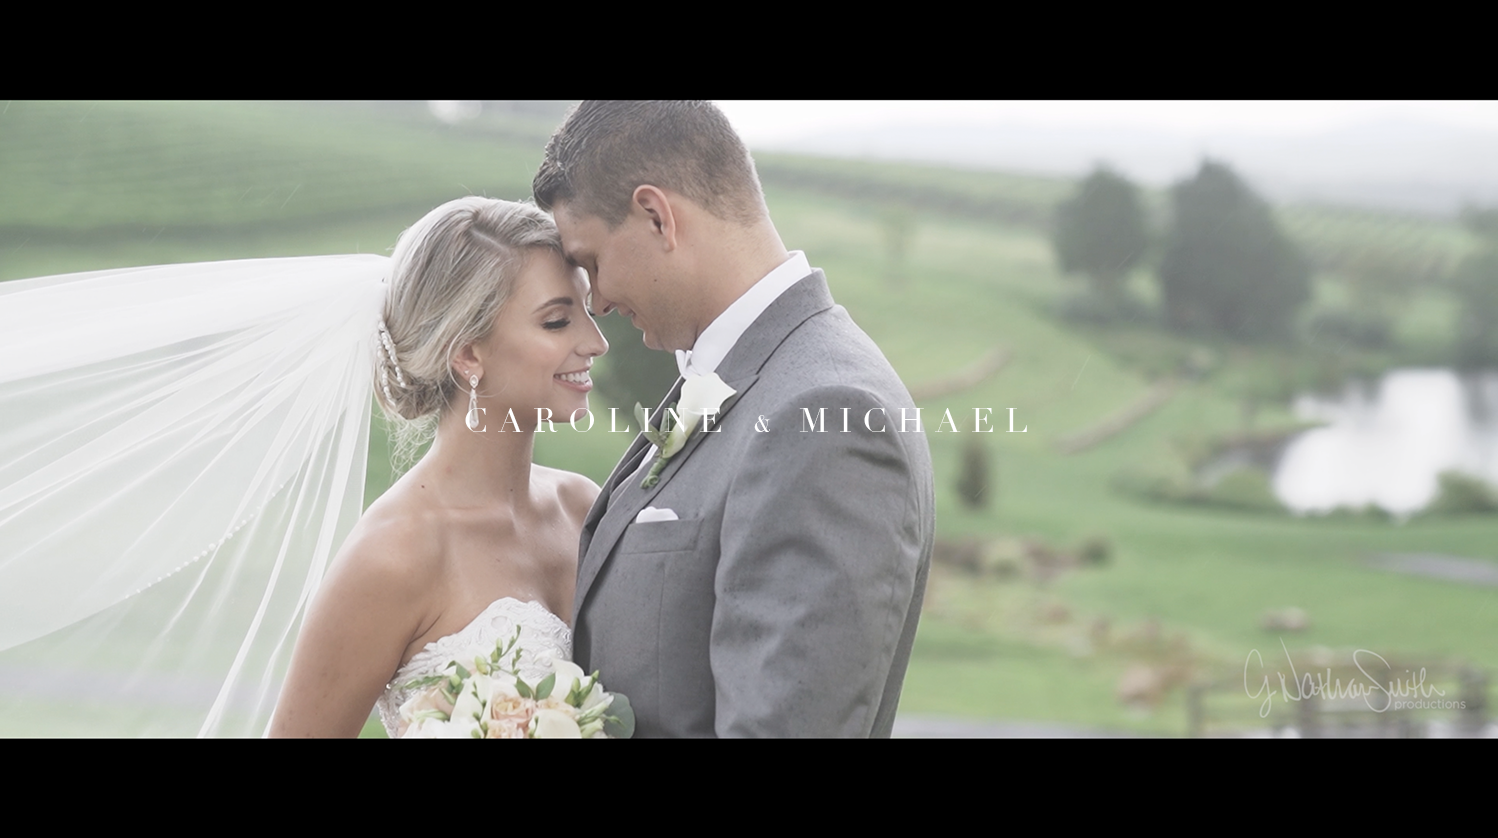 Caroline + Michael | Leesburg, Virginia | Stone Tower Winery